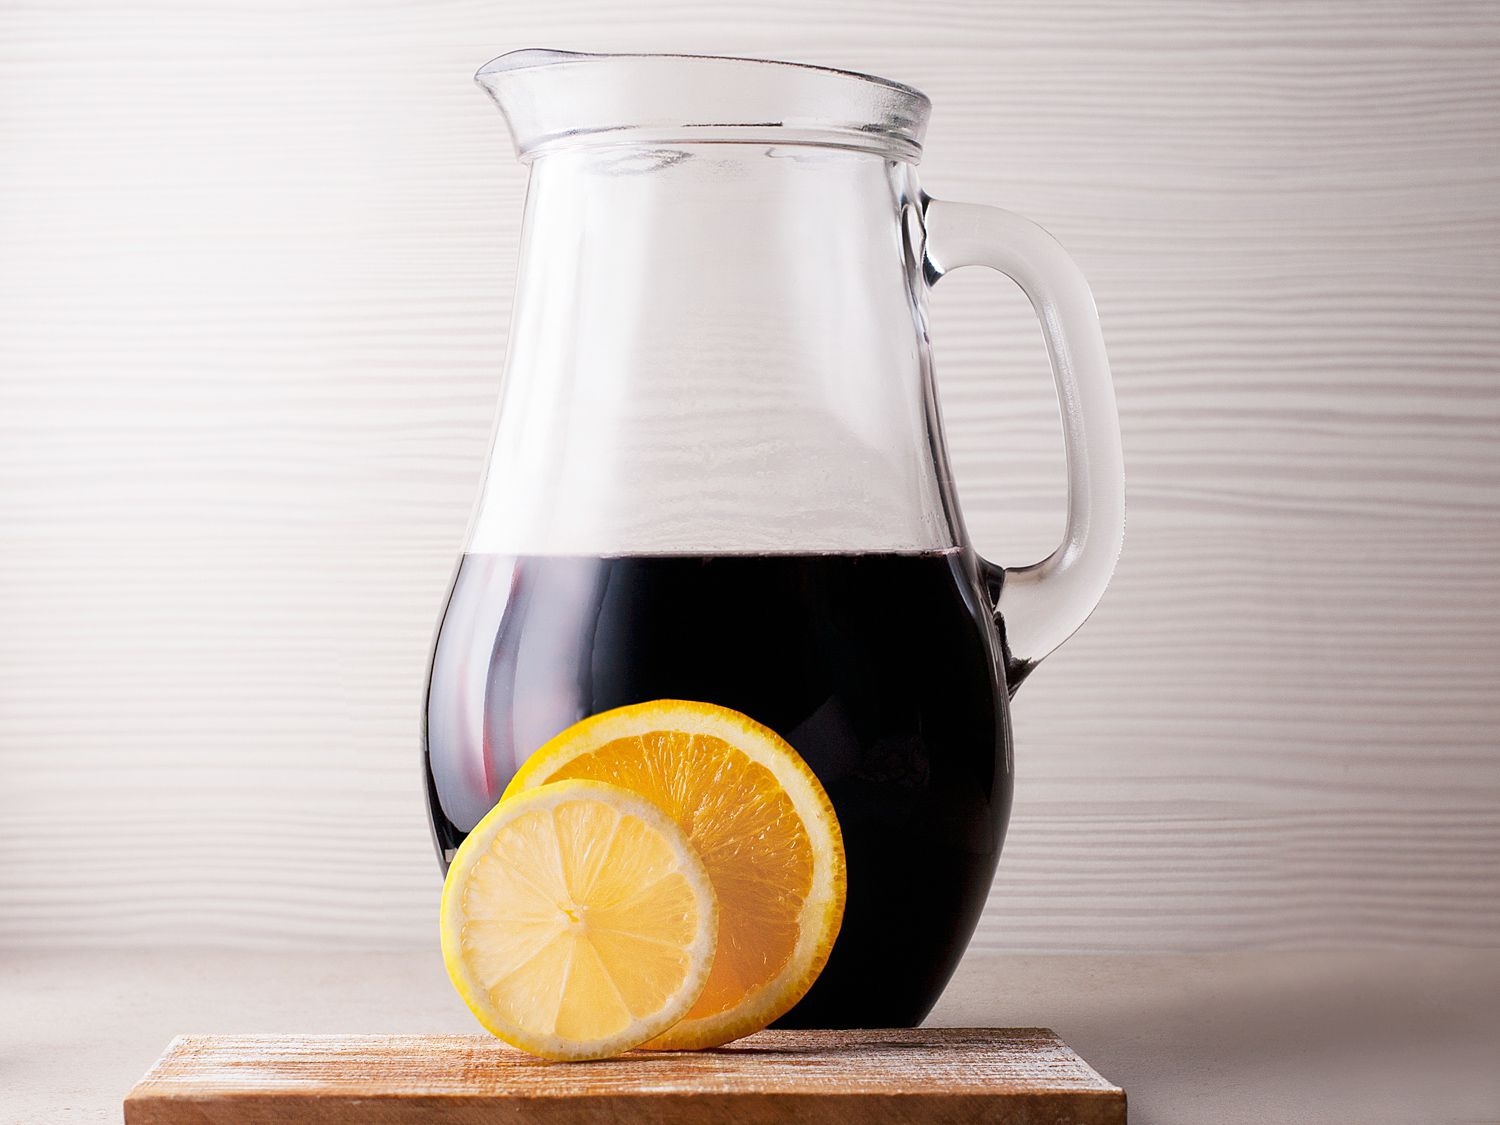 Add sangria ingredients into pitcher